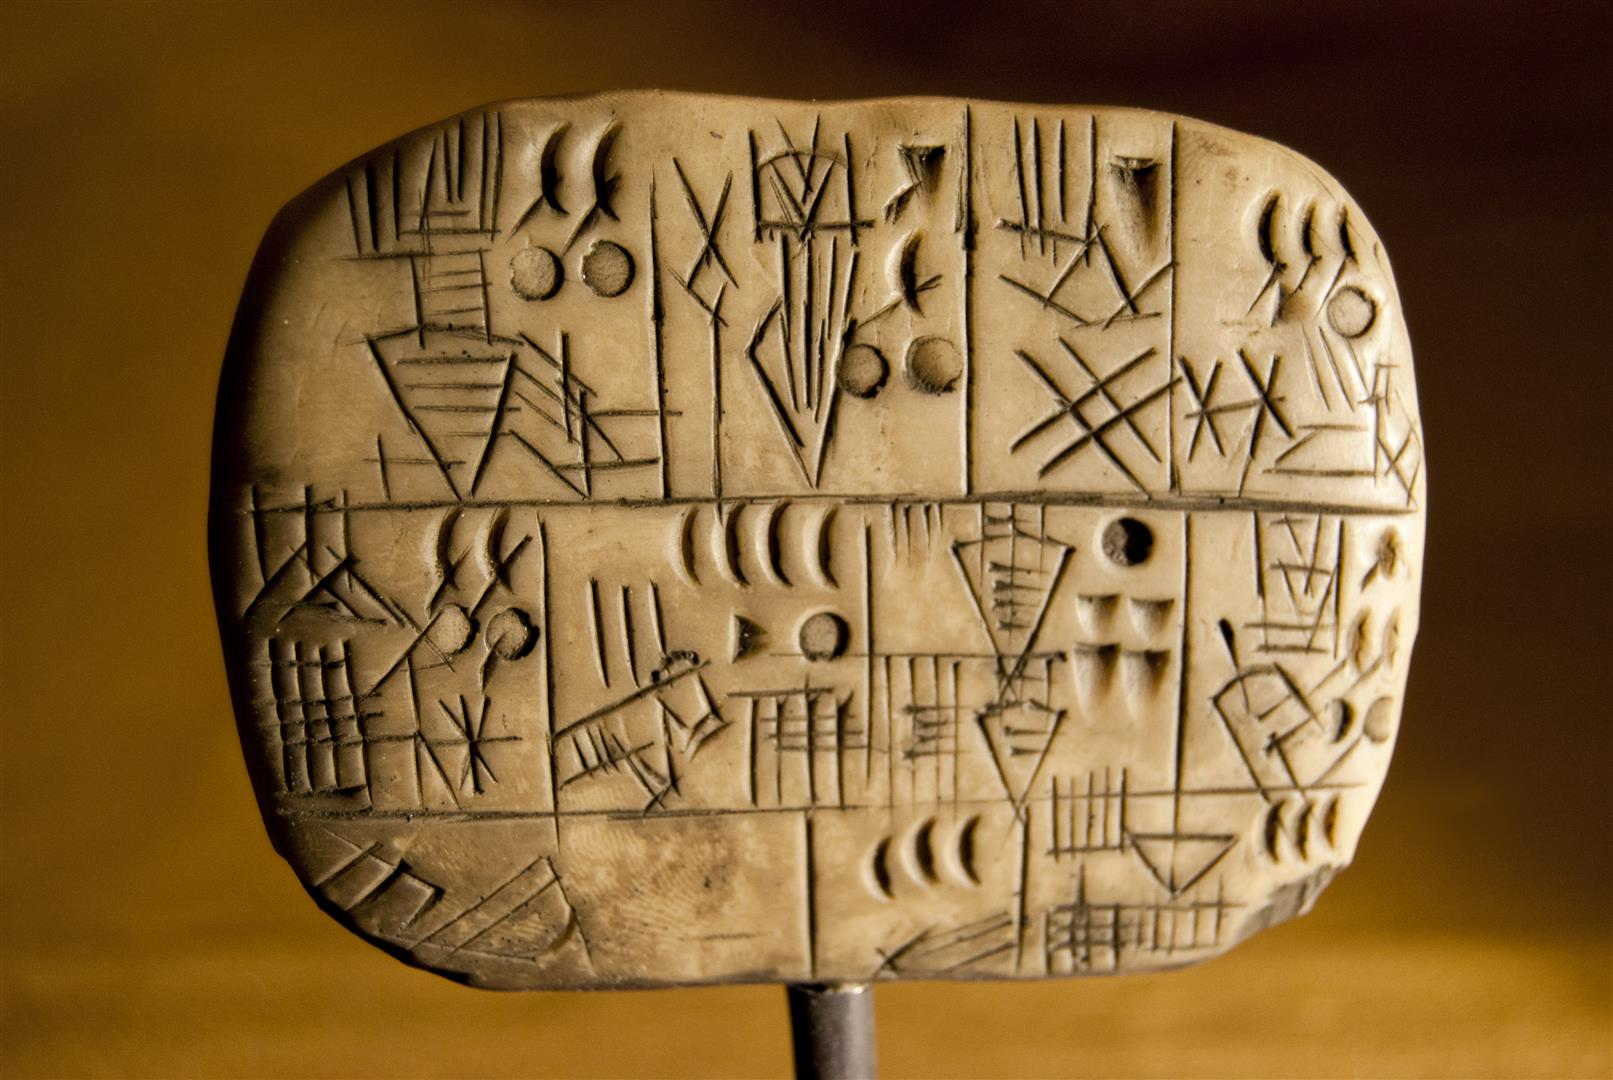 répplica escritura cuneiforme. Cuneiform writing replica